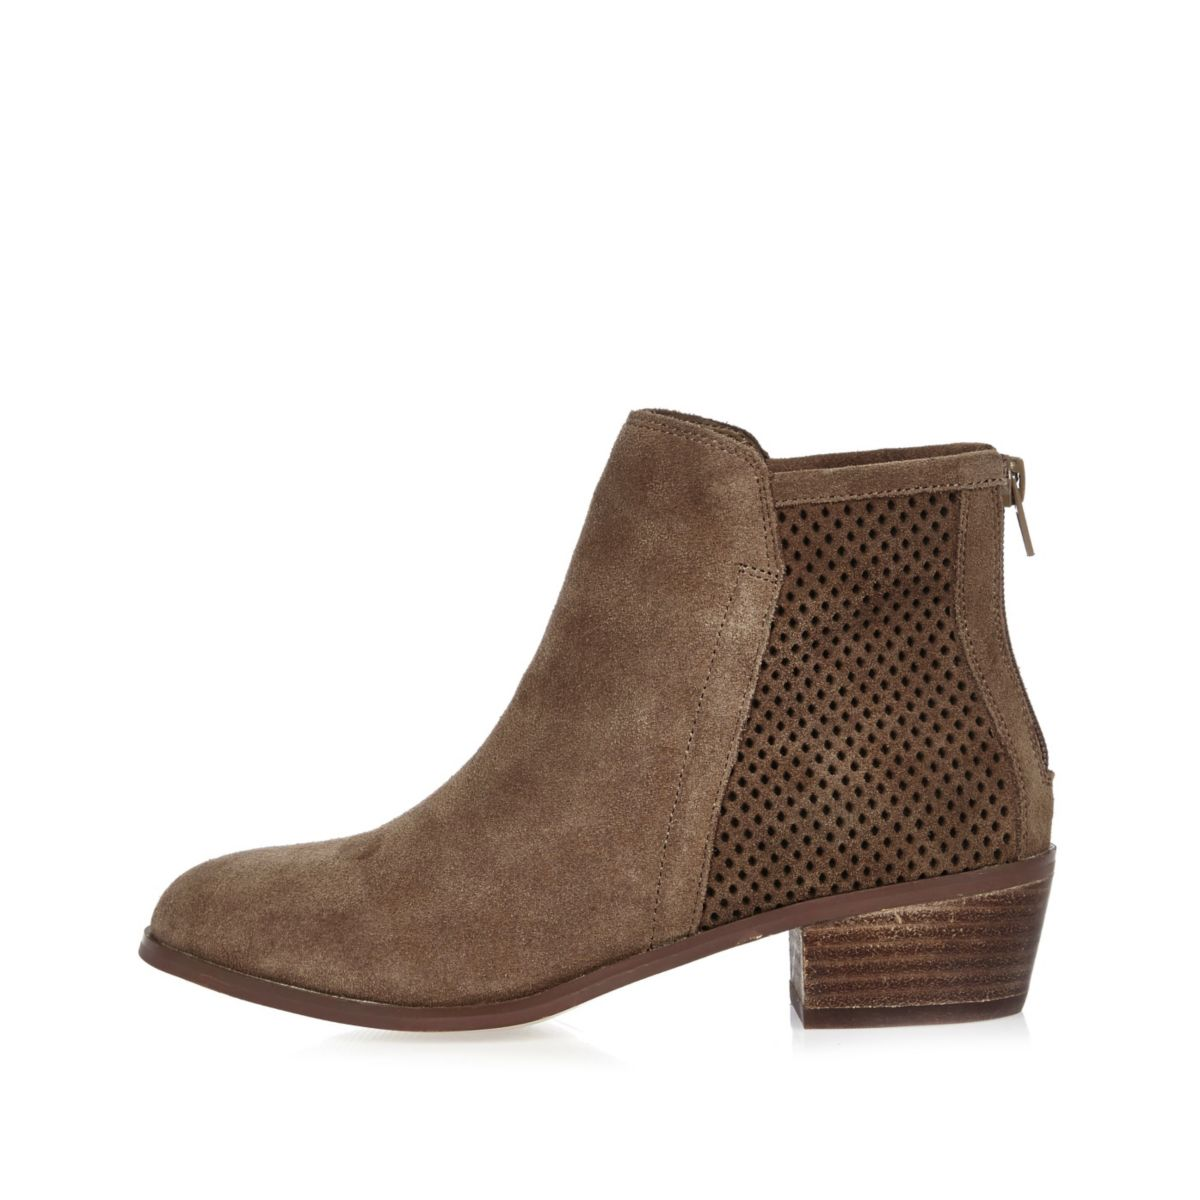 Bottines en daim marron à perforations